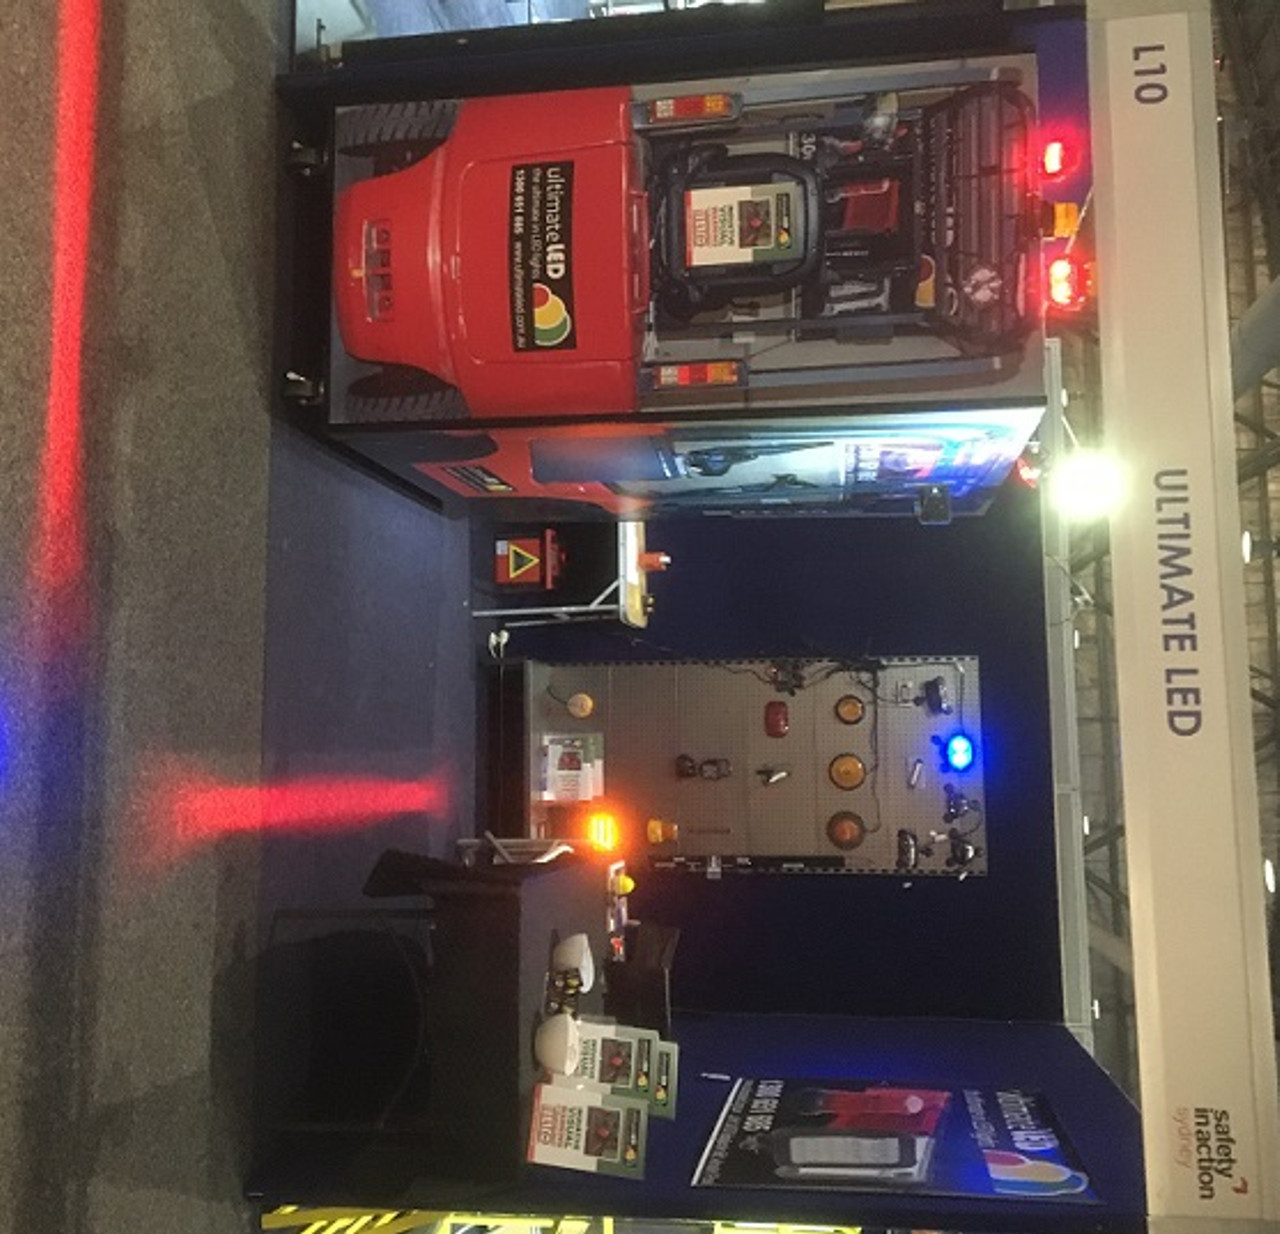 Our Sydney Safety Expo Display